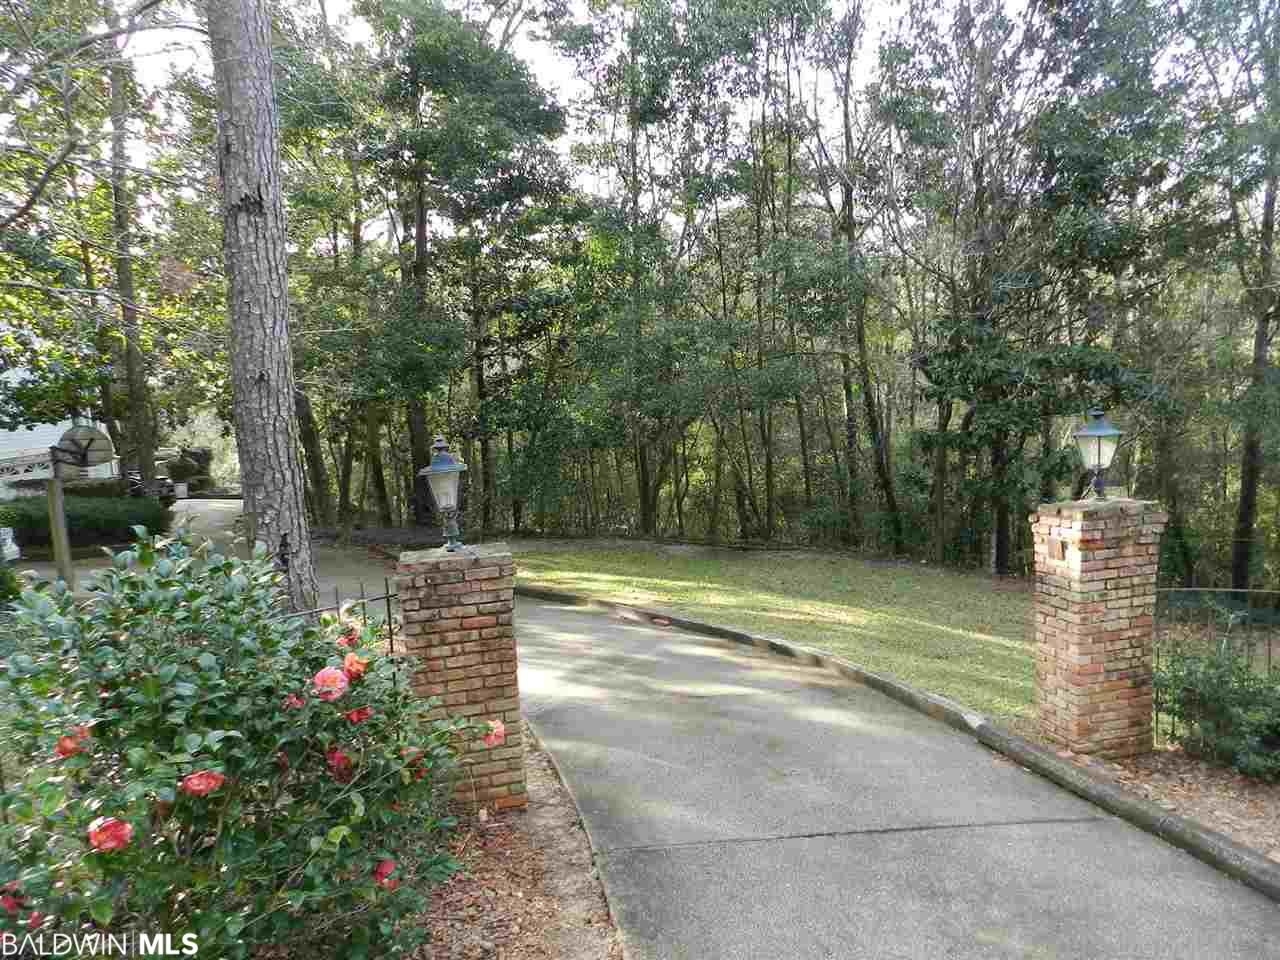 Waterfront residential lot on Rock Creek just steps from Mobile Bay. Exclusive Sans Souci subdivision with deeded access to Beach and Pier with Gazebo on Mobile Bay. Enjoy private waterfront with HOA maintained boardwalk/riverwalk and neighborhood foot paths. Also fronts scenic Hwy 98 in Old Montrose adjacent to Ecor Rouge (highest point on US coast between Mexico and Maine). The entrance to lot has an existing paved driveway with brick columns and wrought iron fence.